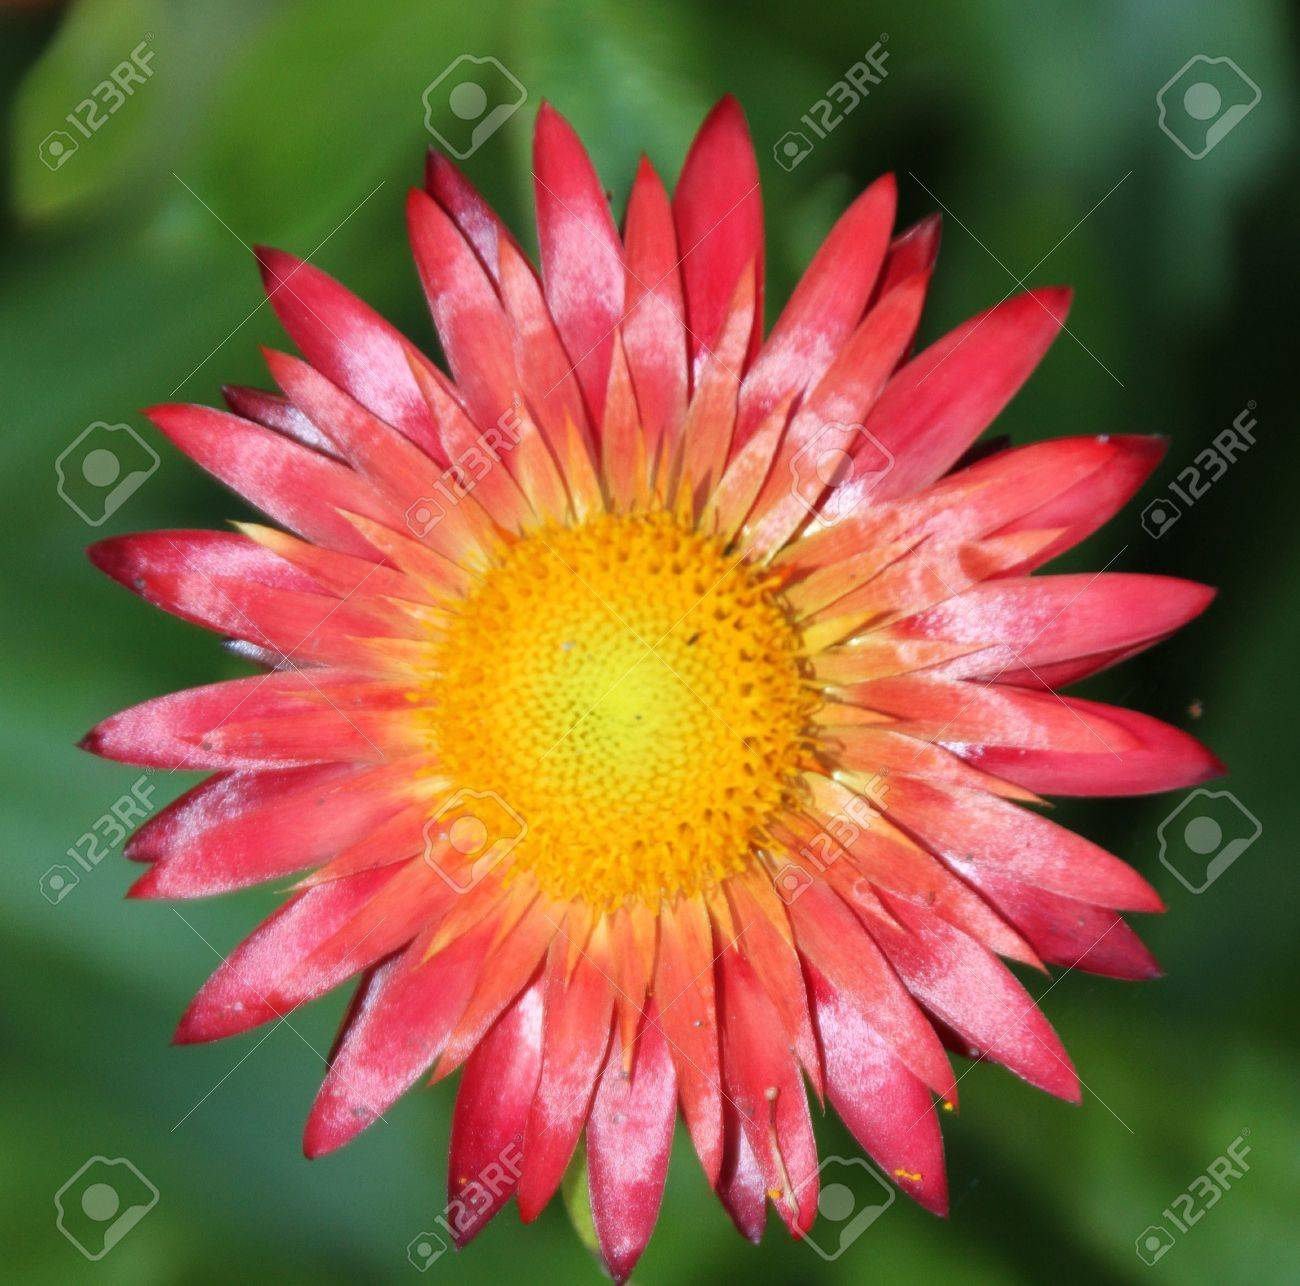 Single Red Flower With Yellow Center In A Garden Stock Photo